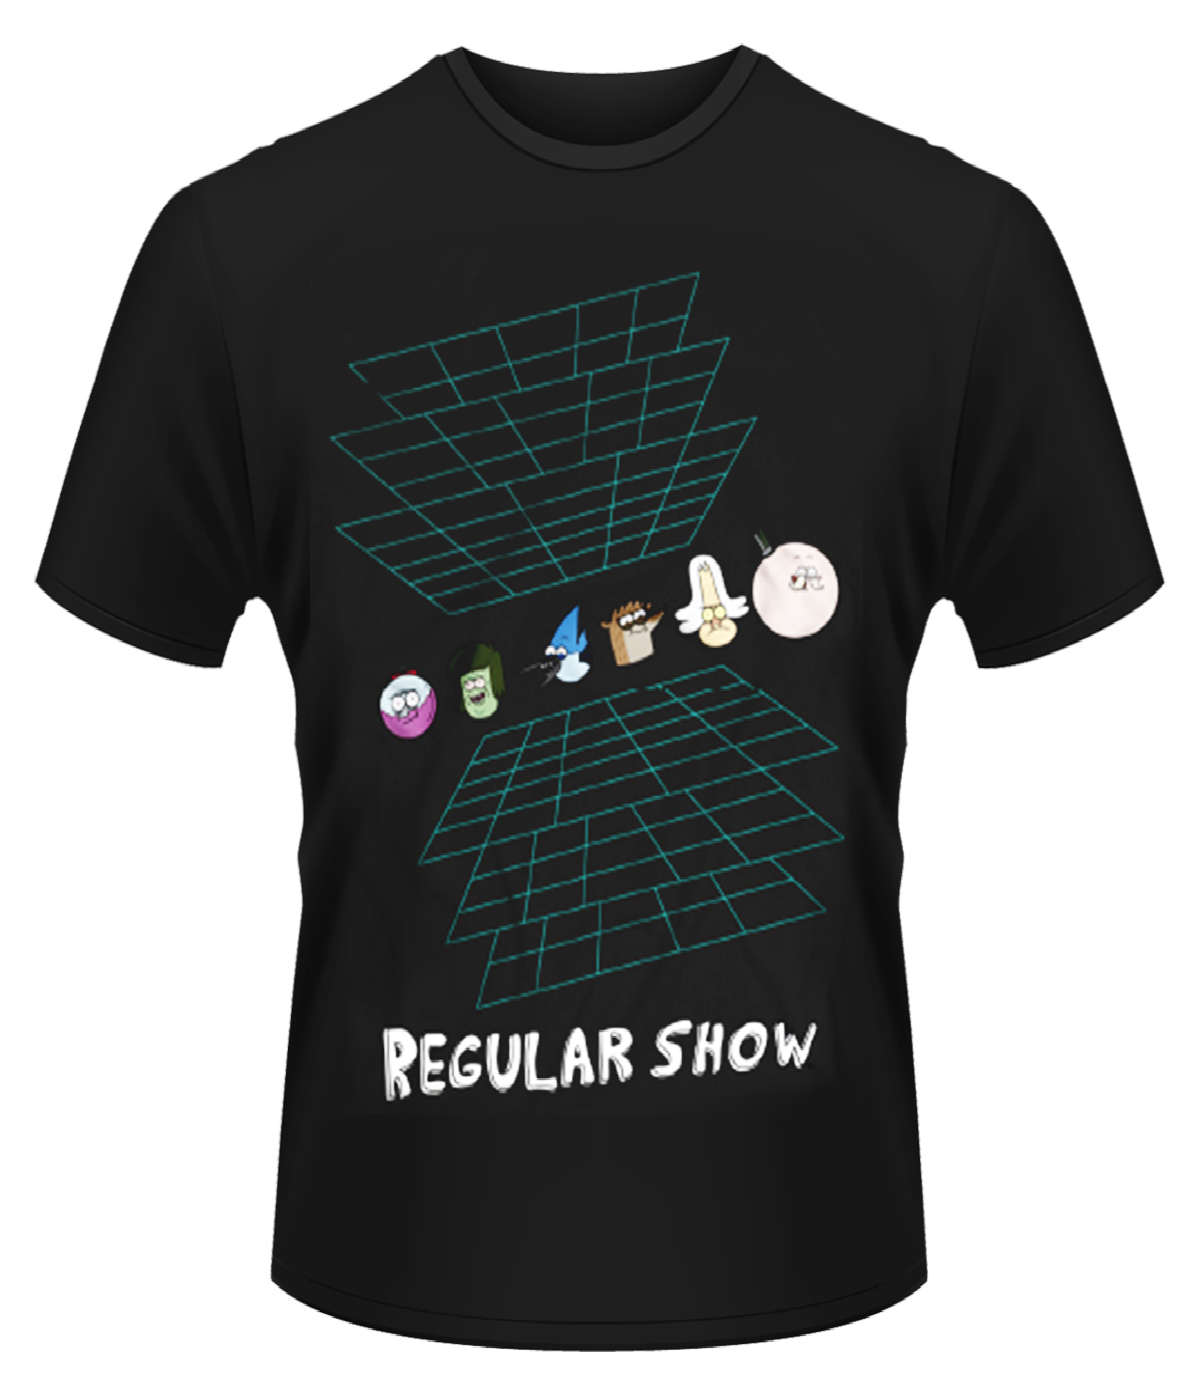 Regular Show 'Virtual Reality' T Shirt